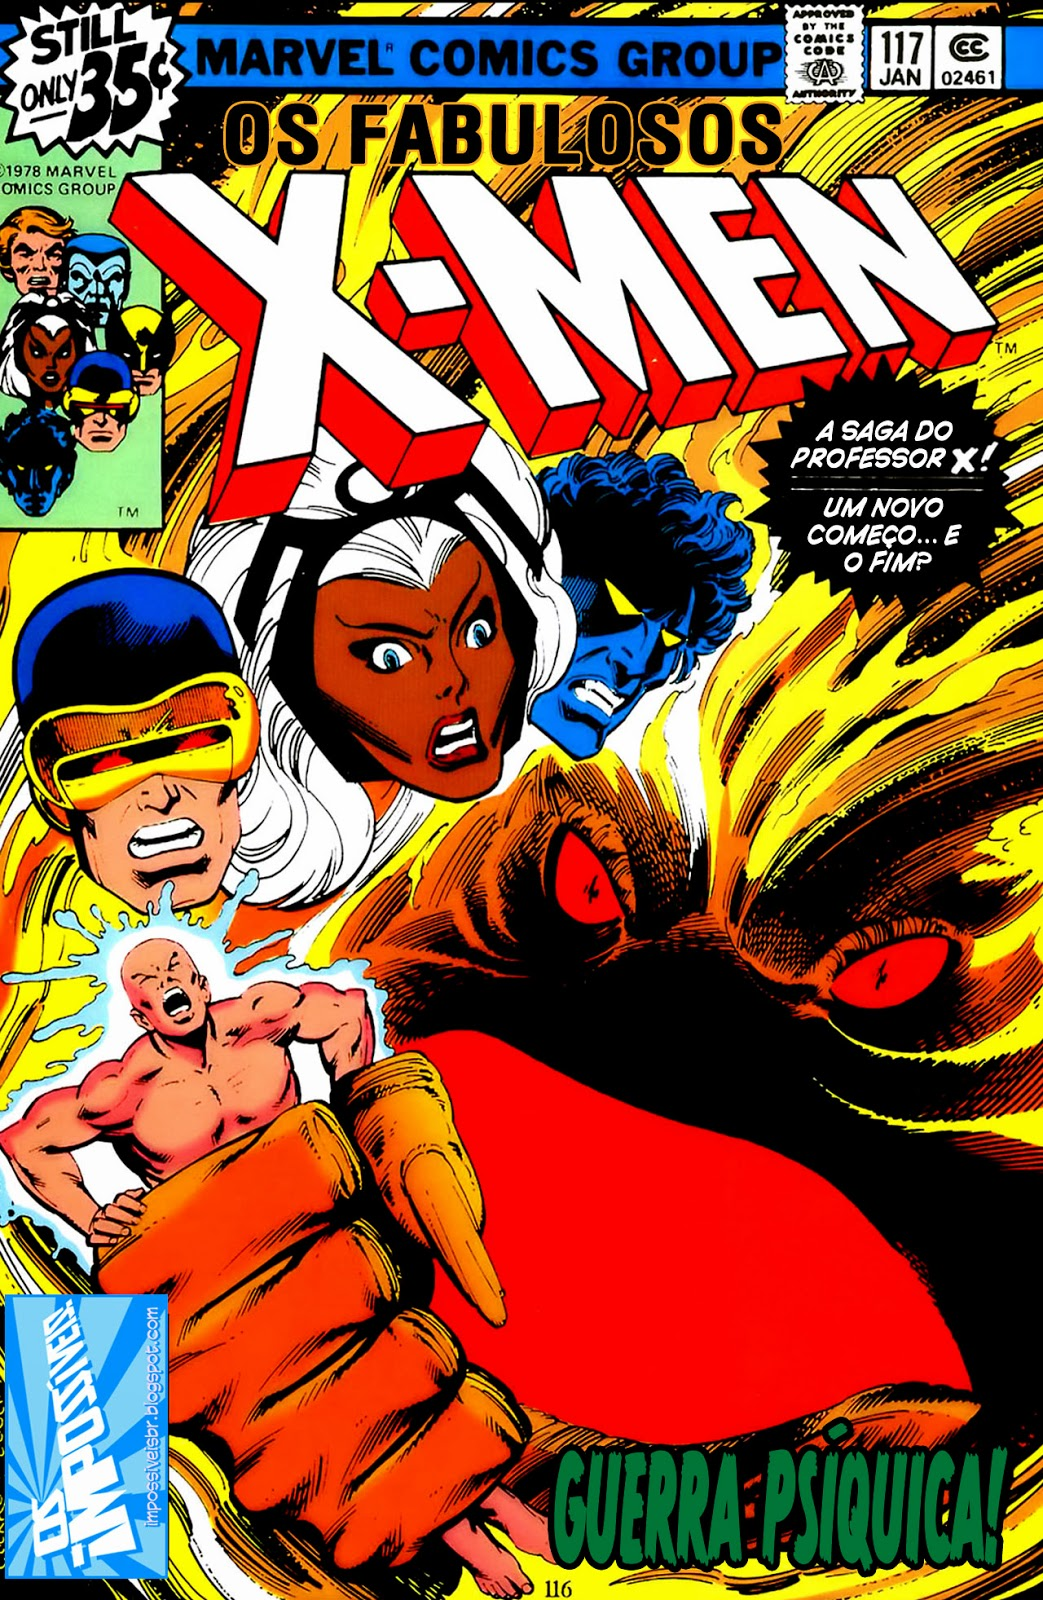 http://www.mediafire.com/download/3fdisp4h407q6f0/Os.Fabulosos.X-Men.(X-Men.V1).117.HQBR.28OUT13.Os.Impossiveis.cbr